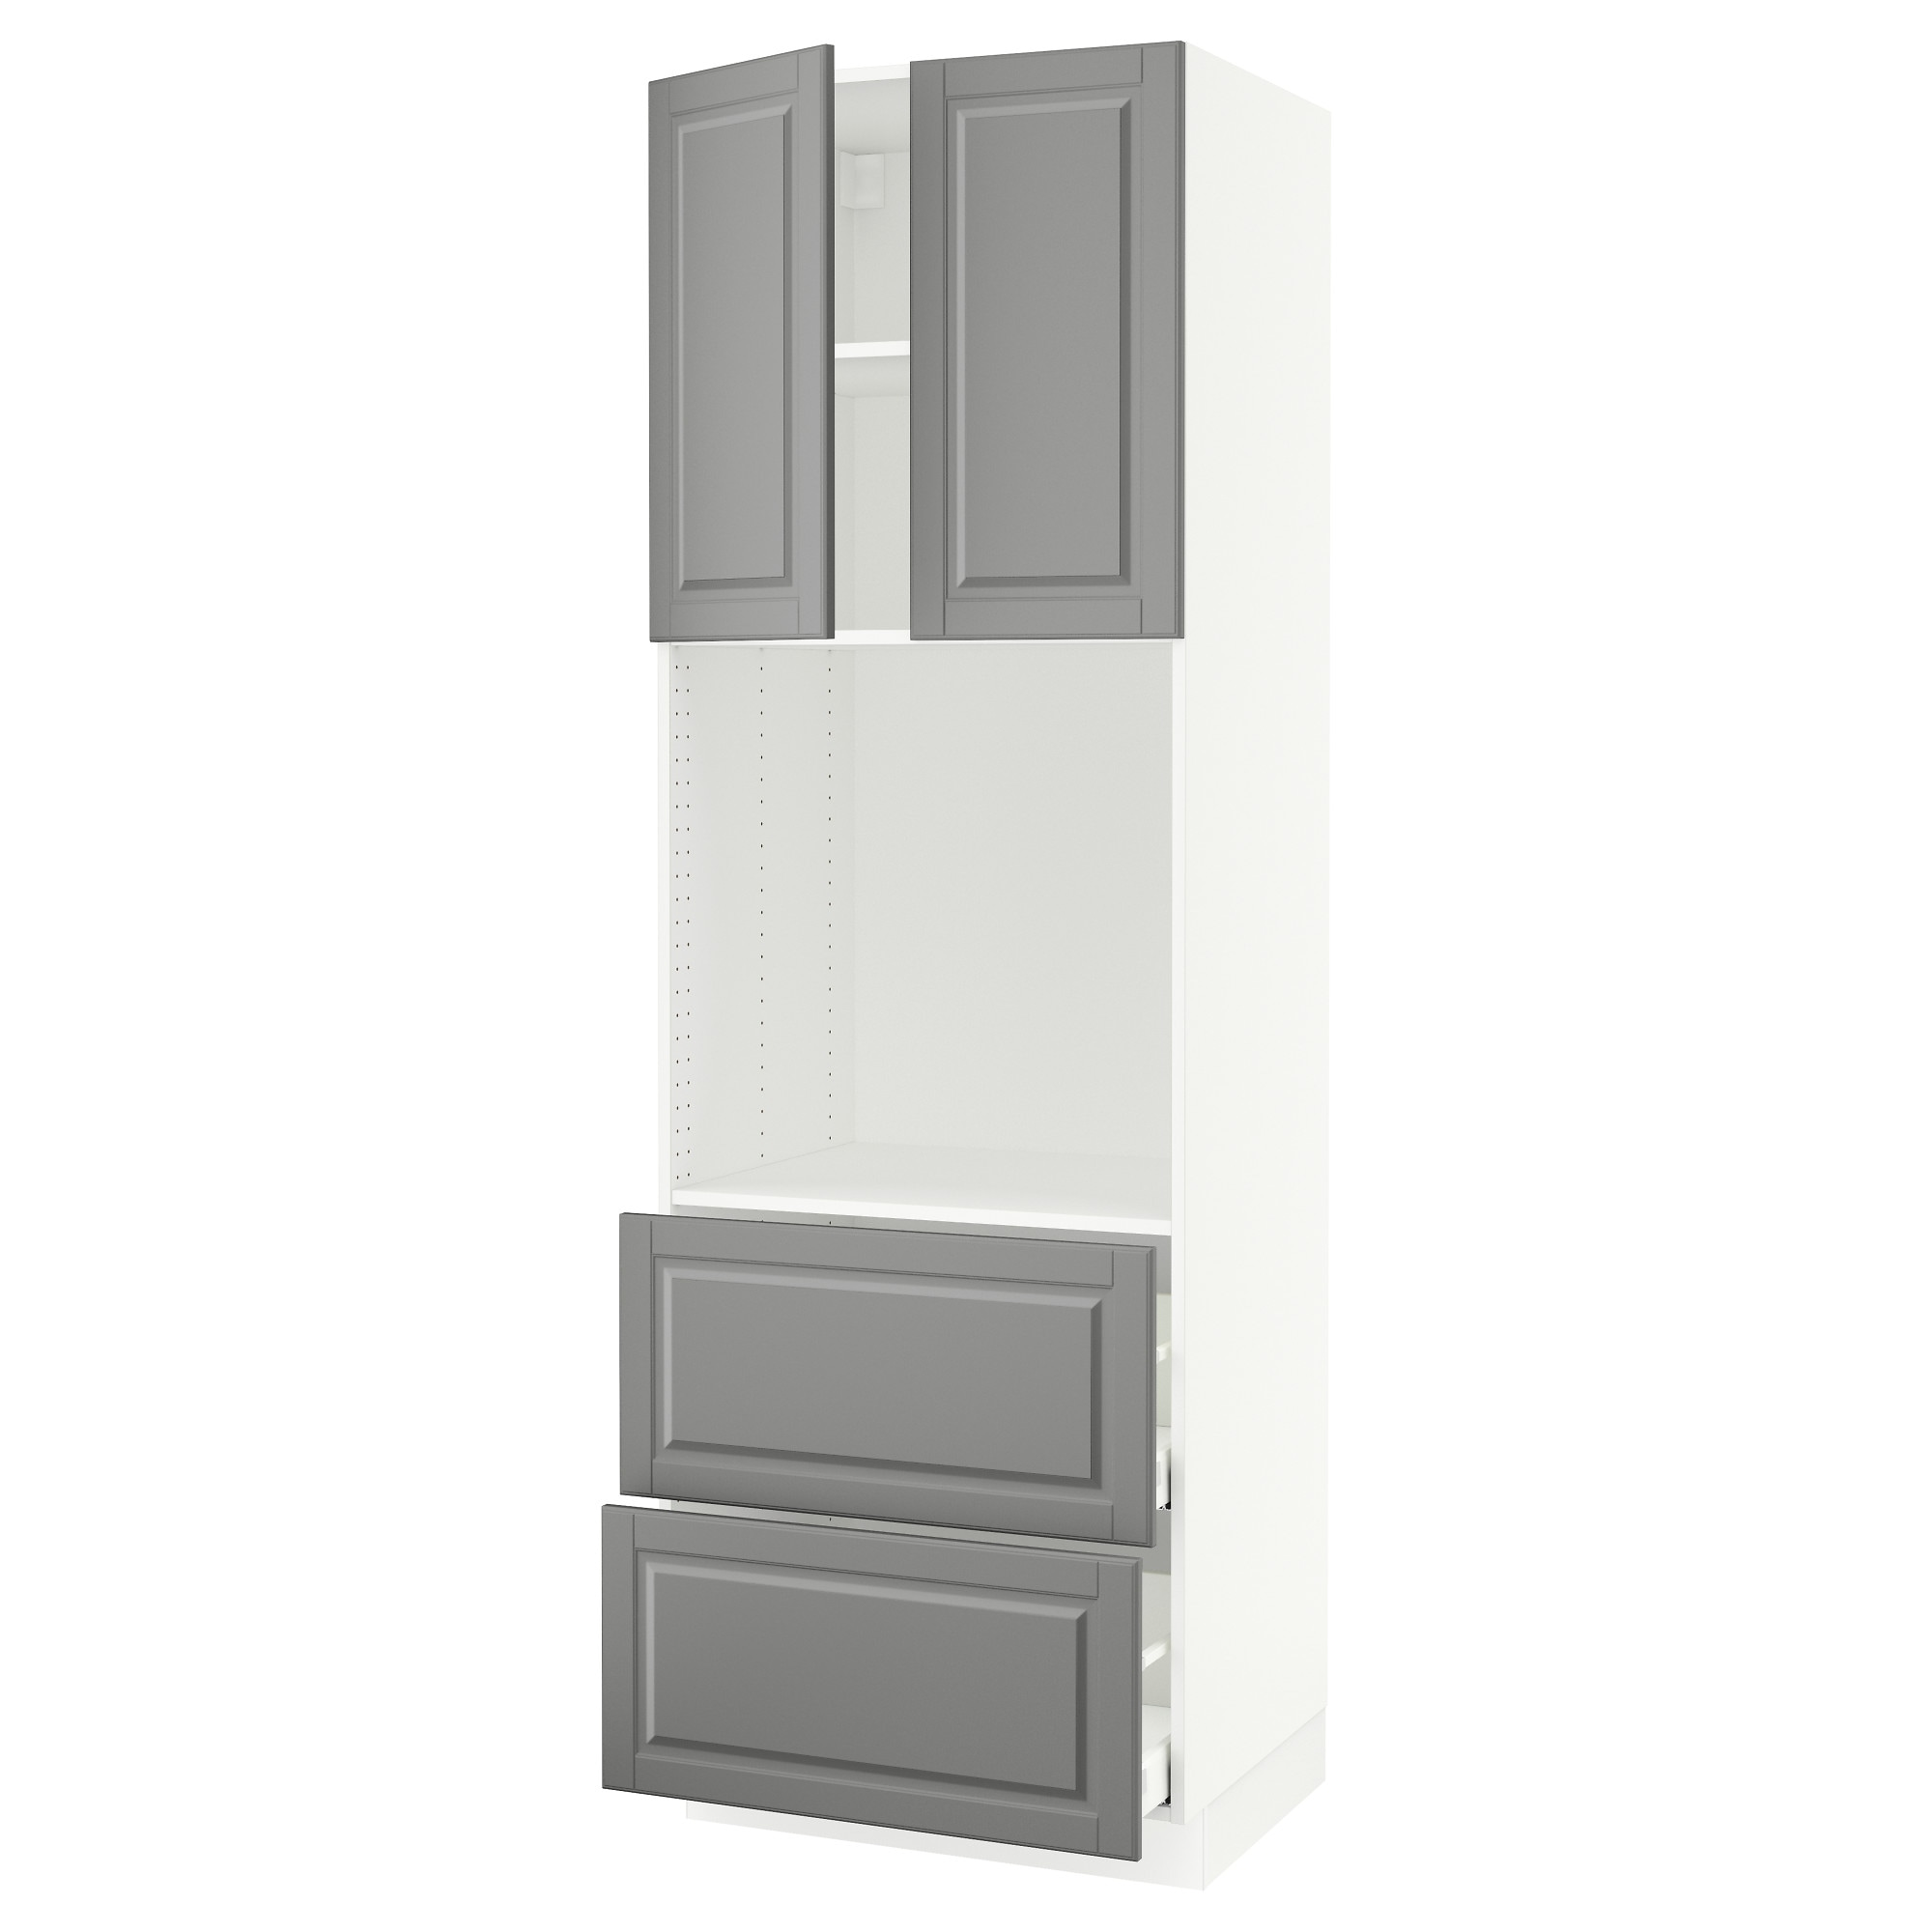 Cabinets for BuiltIn Appliances SEKTION System IKEA